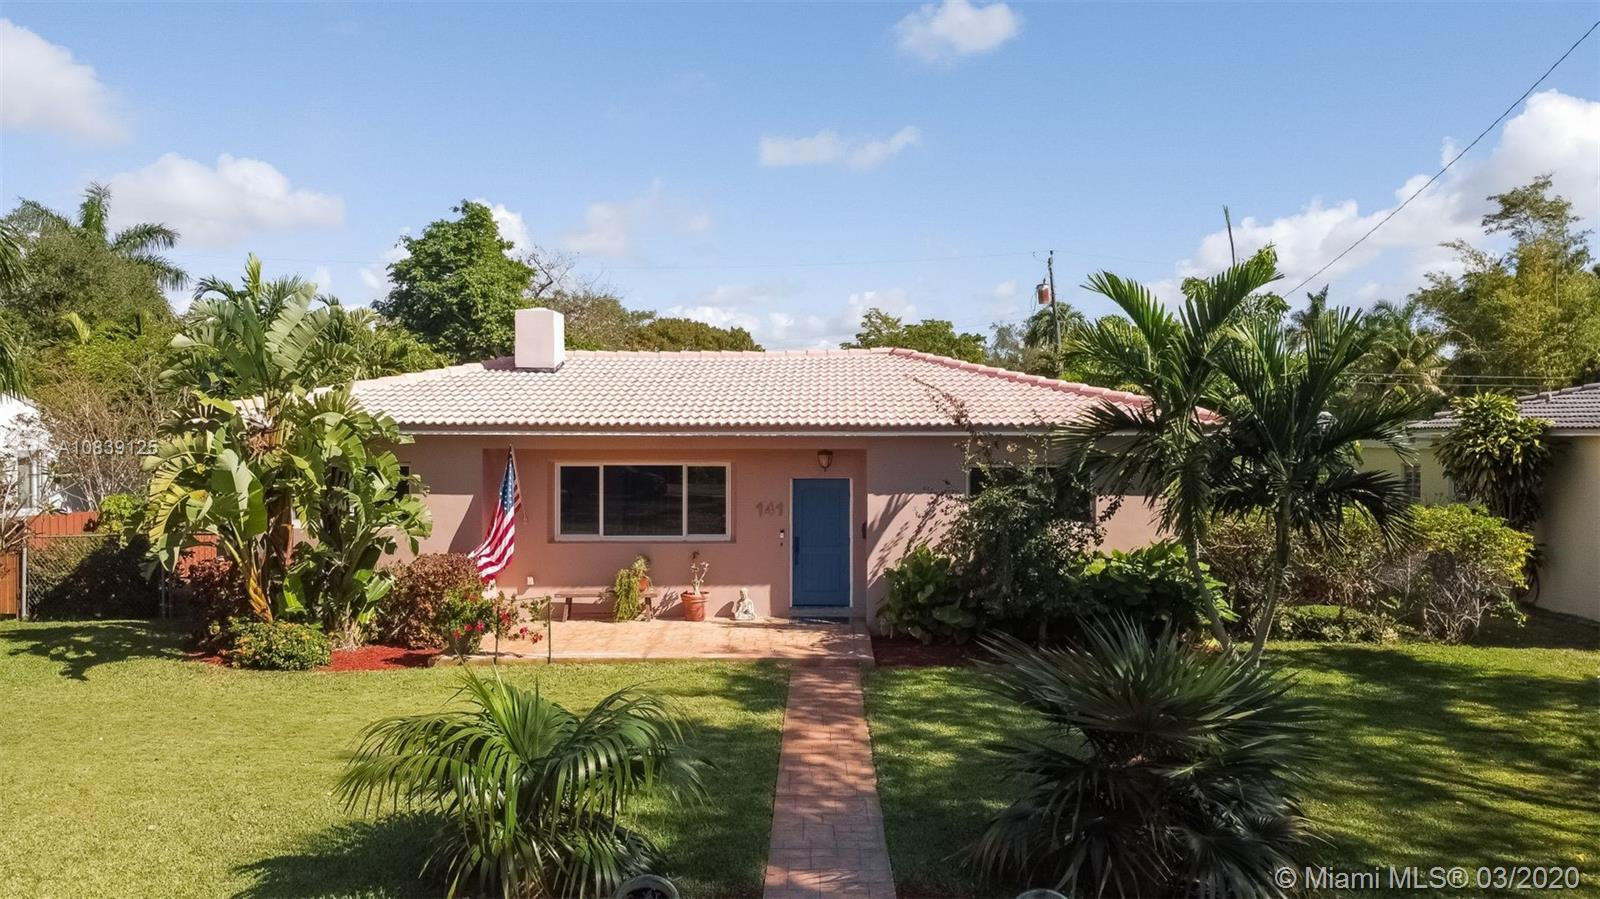 MIAMI SHORES POOL HOME ON A QUIET NO-THROUGH STREET.  BEAUTIFUL OUTDOOR ENTERTAINING SPACES, EASY TO